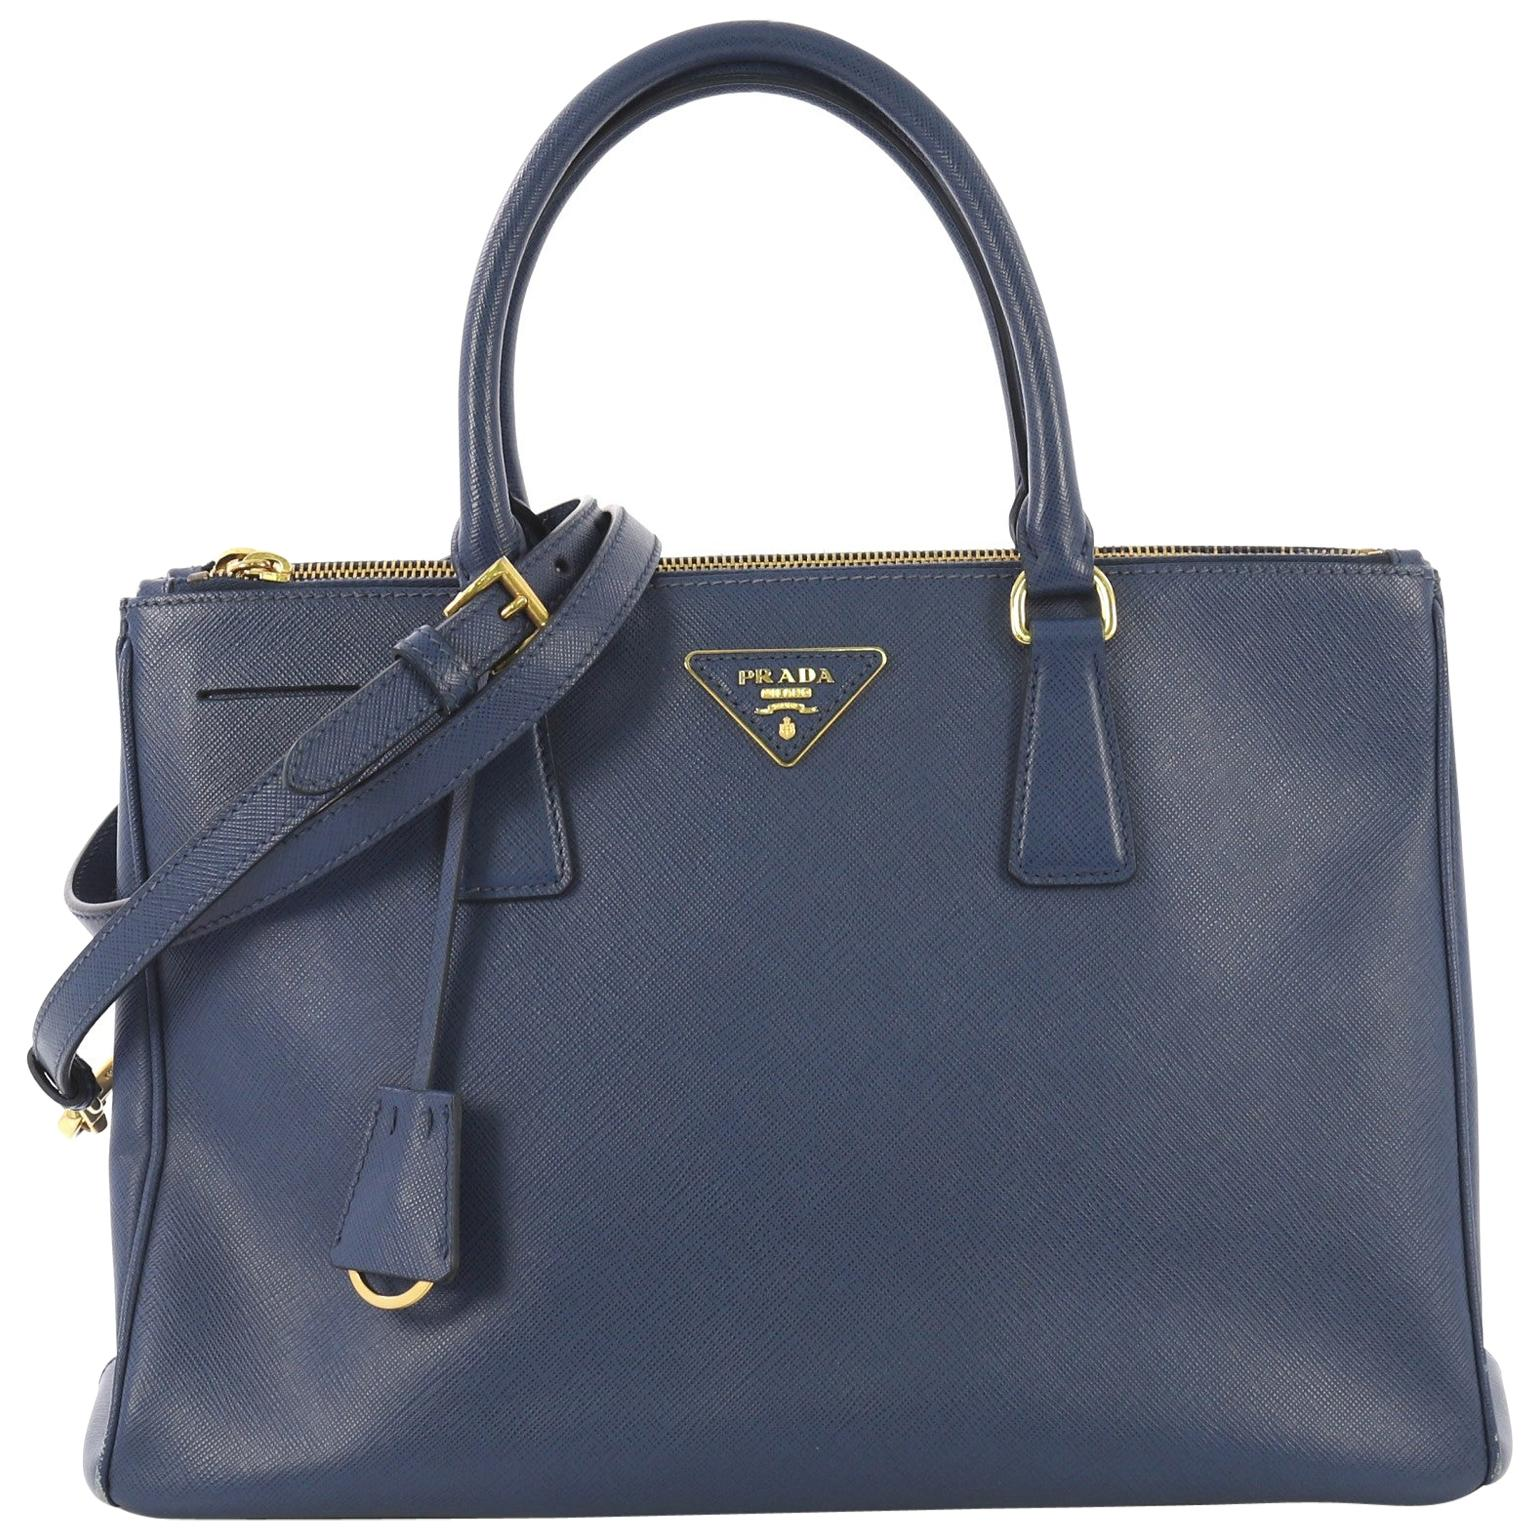 5c867c0856b2 Vintage Prada Handbags and Purses - 1,246 For Sale at 1stdibs